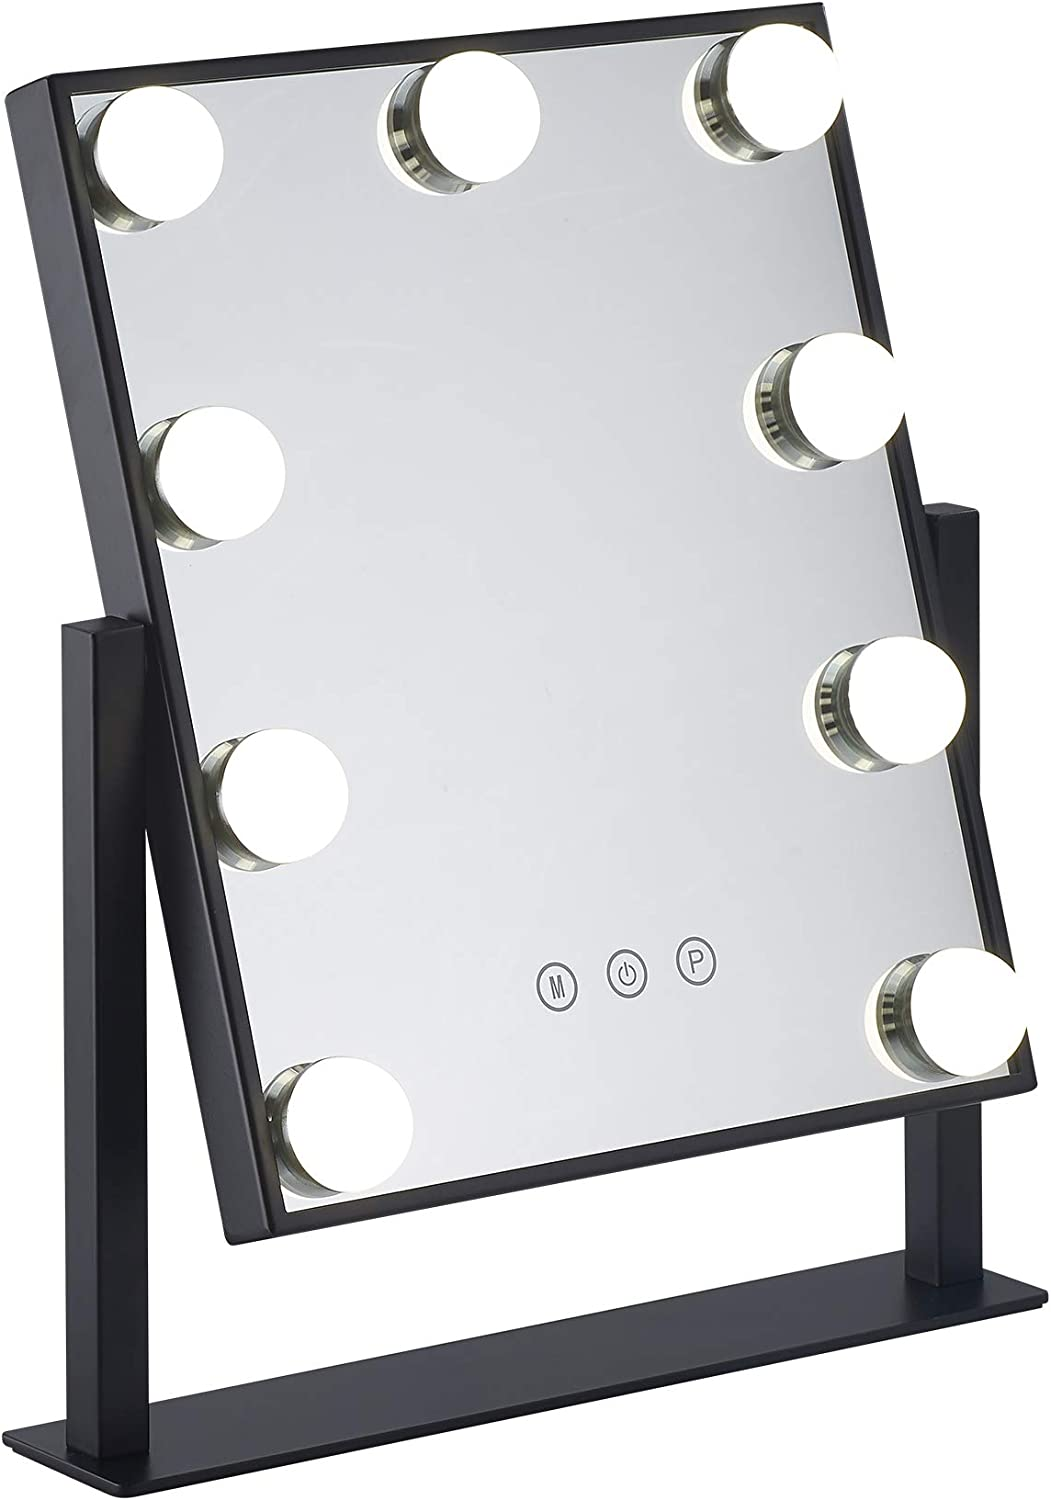 Makeup Mirror with LED Light 9 Nippon regular agency Hollywood price Vanity Lighted